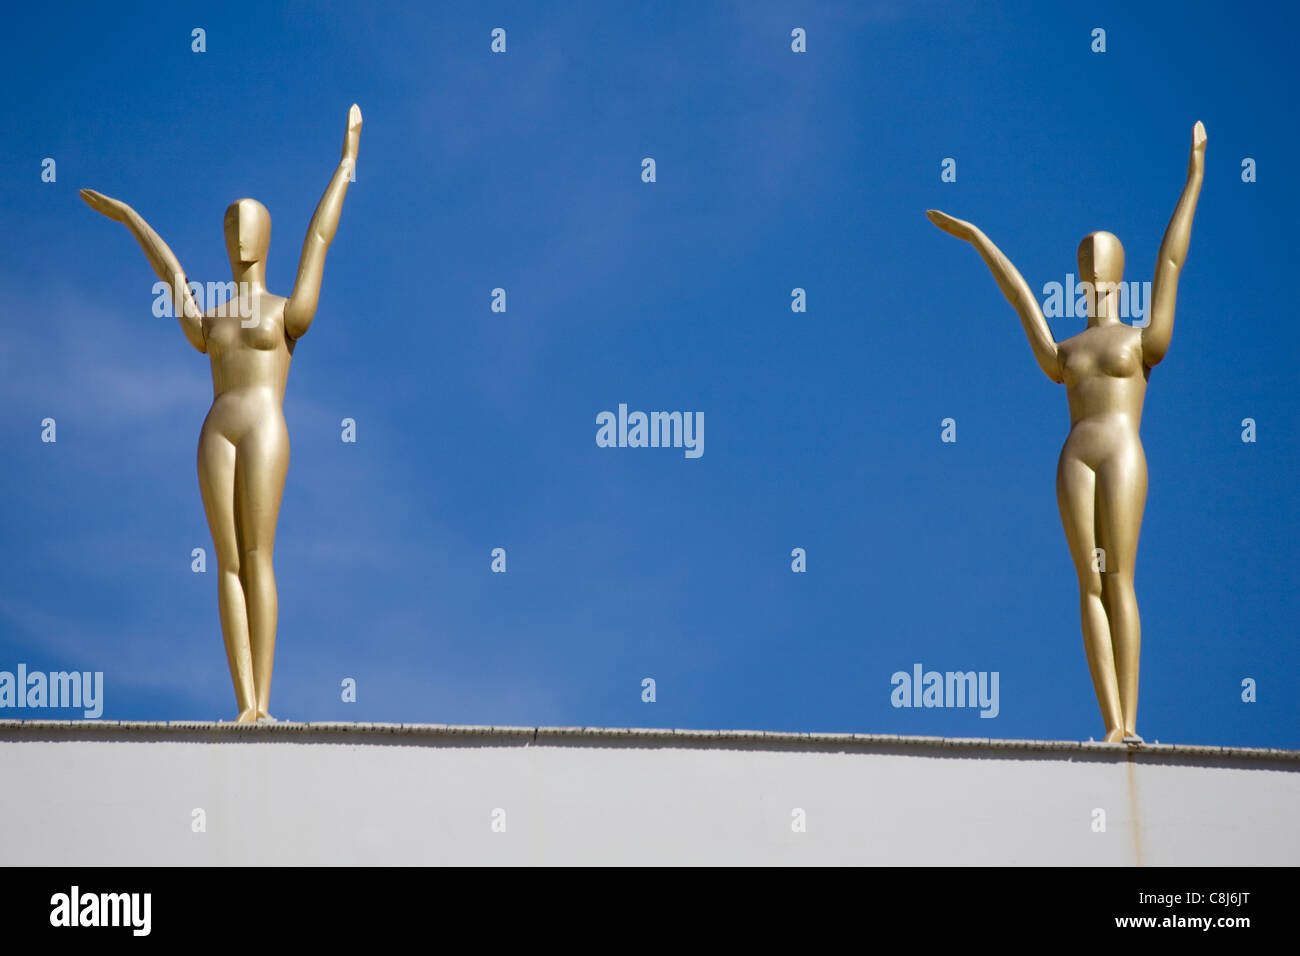 Sculptures on the Teatre-Museu Dali, Figueres, Catalonia, Spain - Stock Image